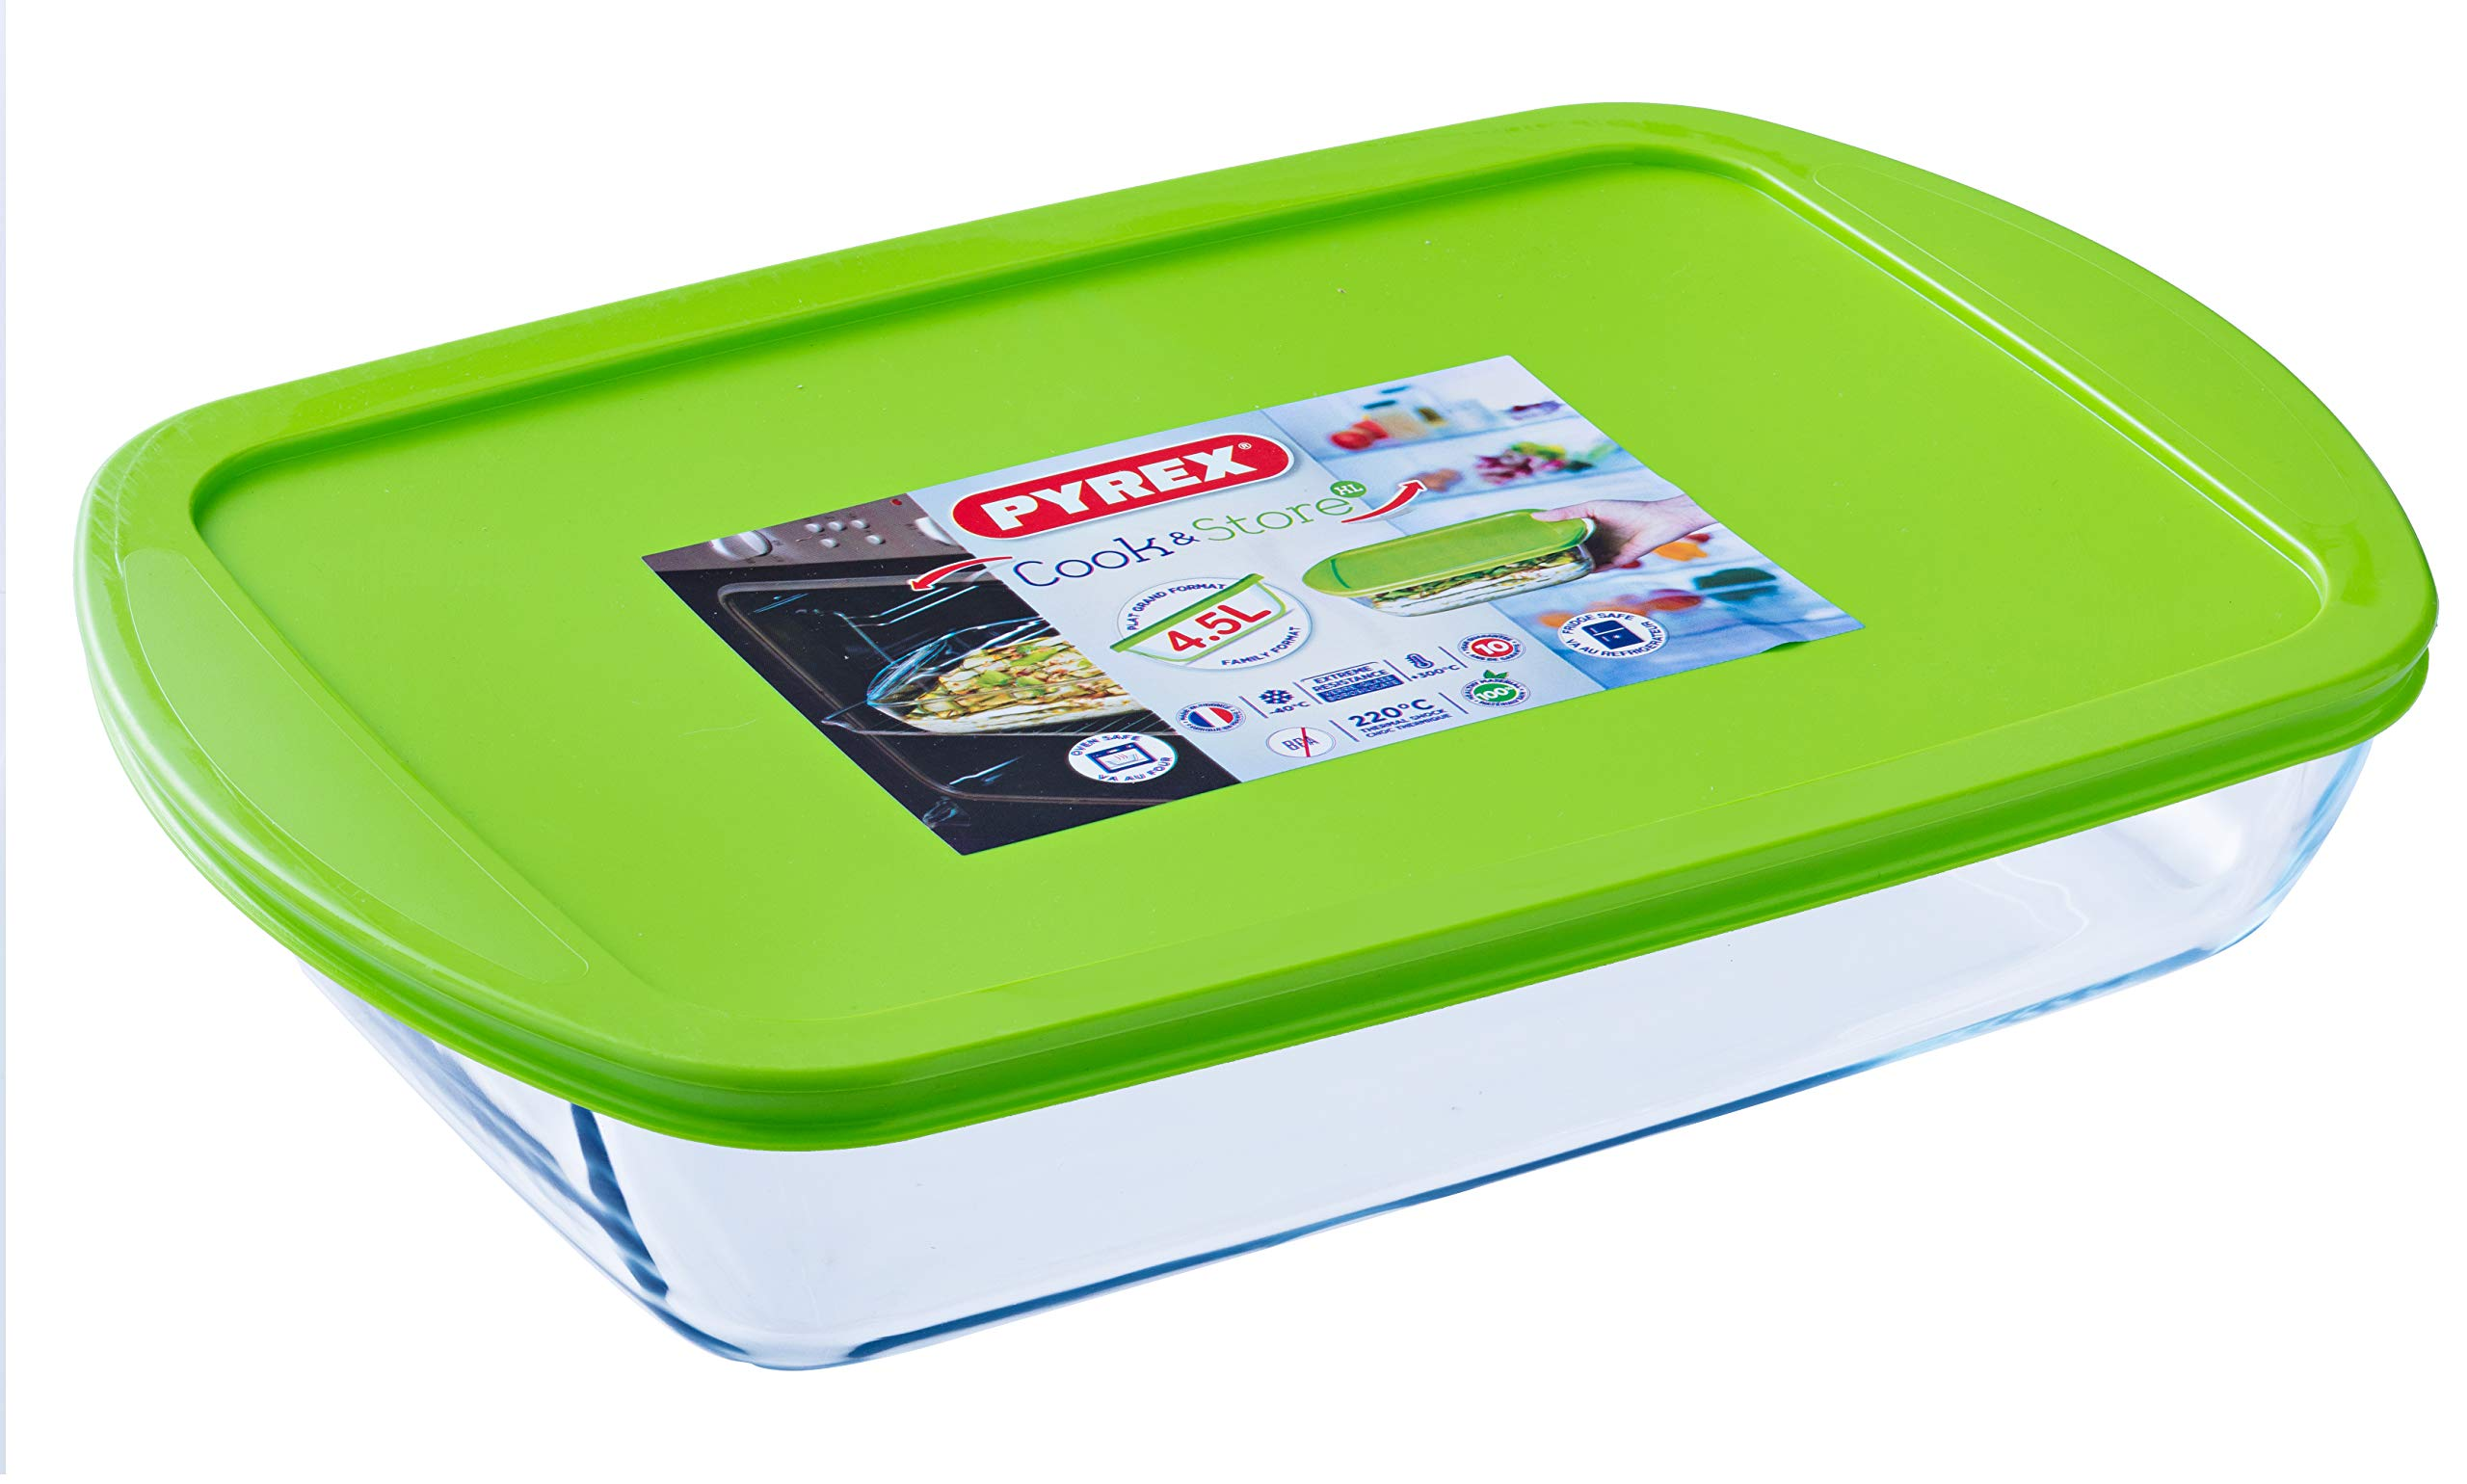 Pyrex 4937755 Baking dish Borosilicate glass by Pyrex